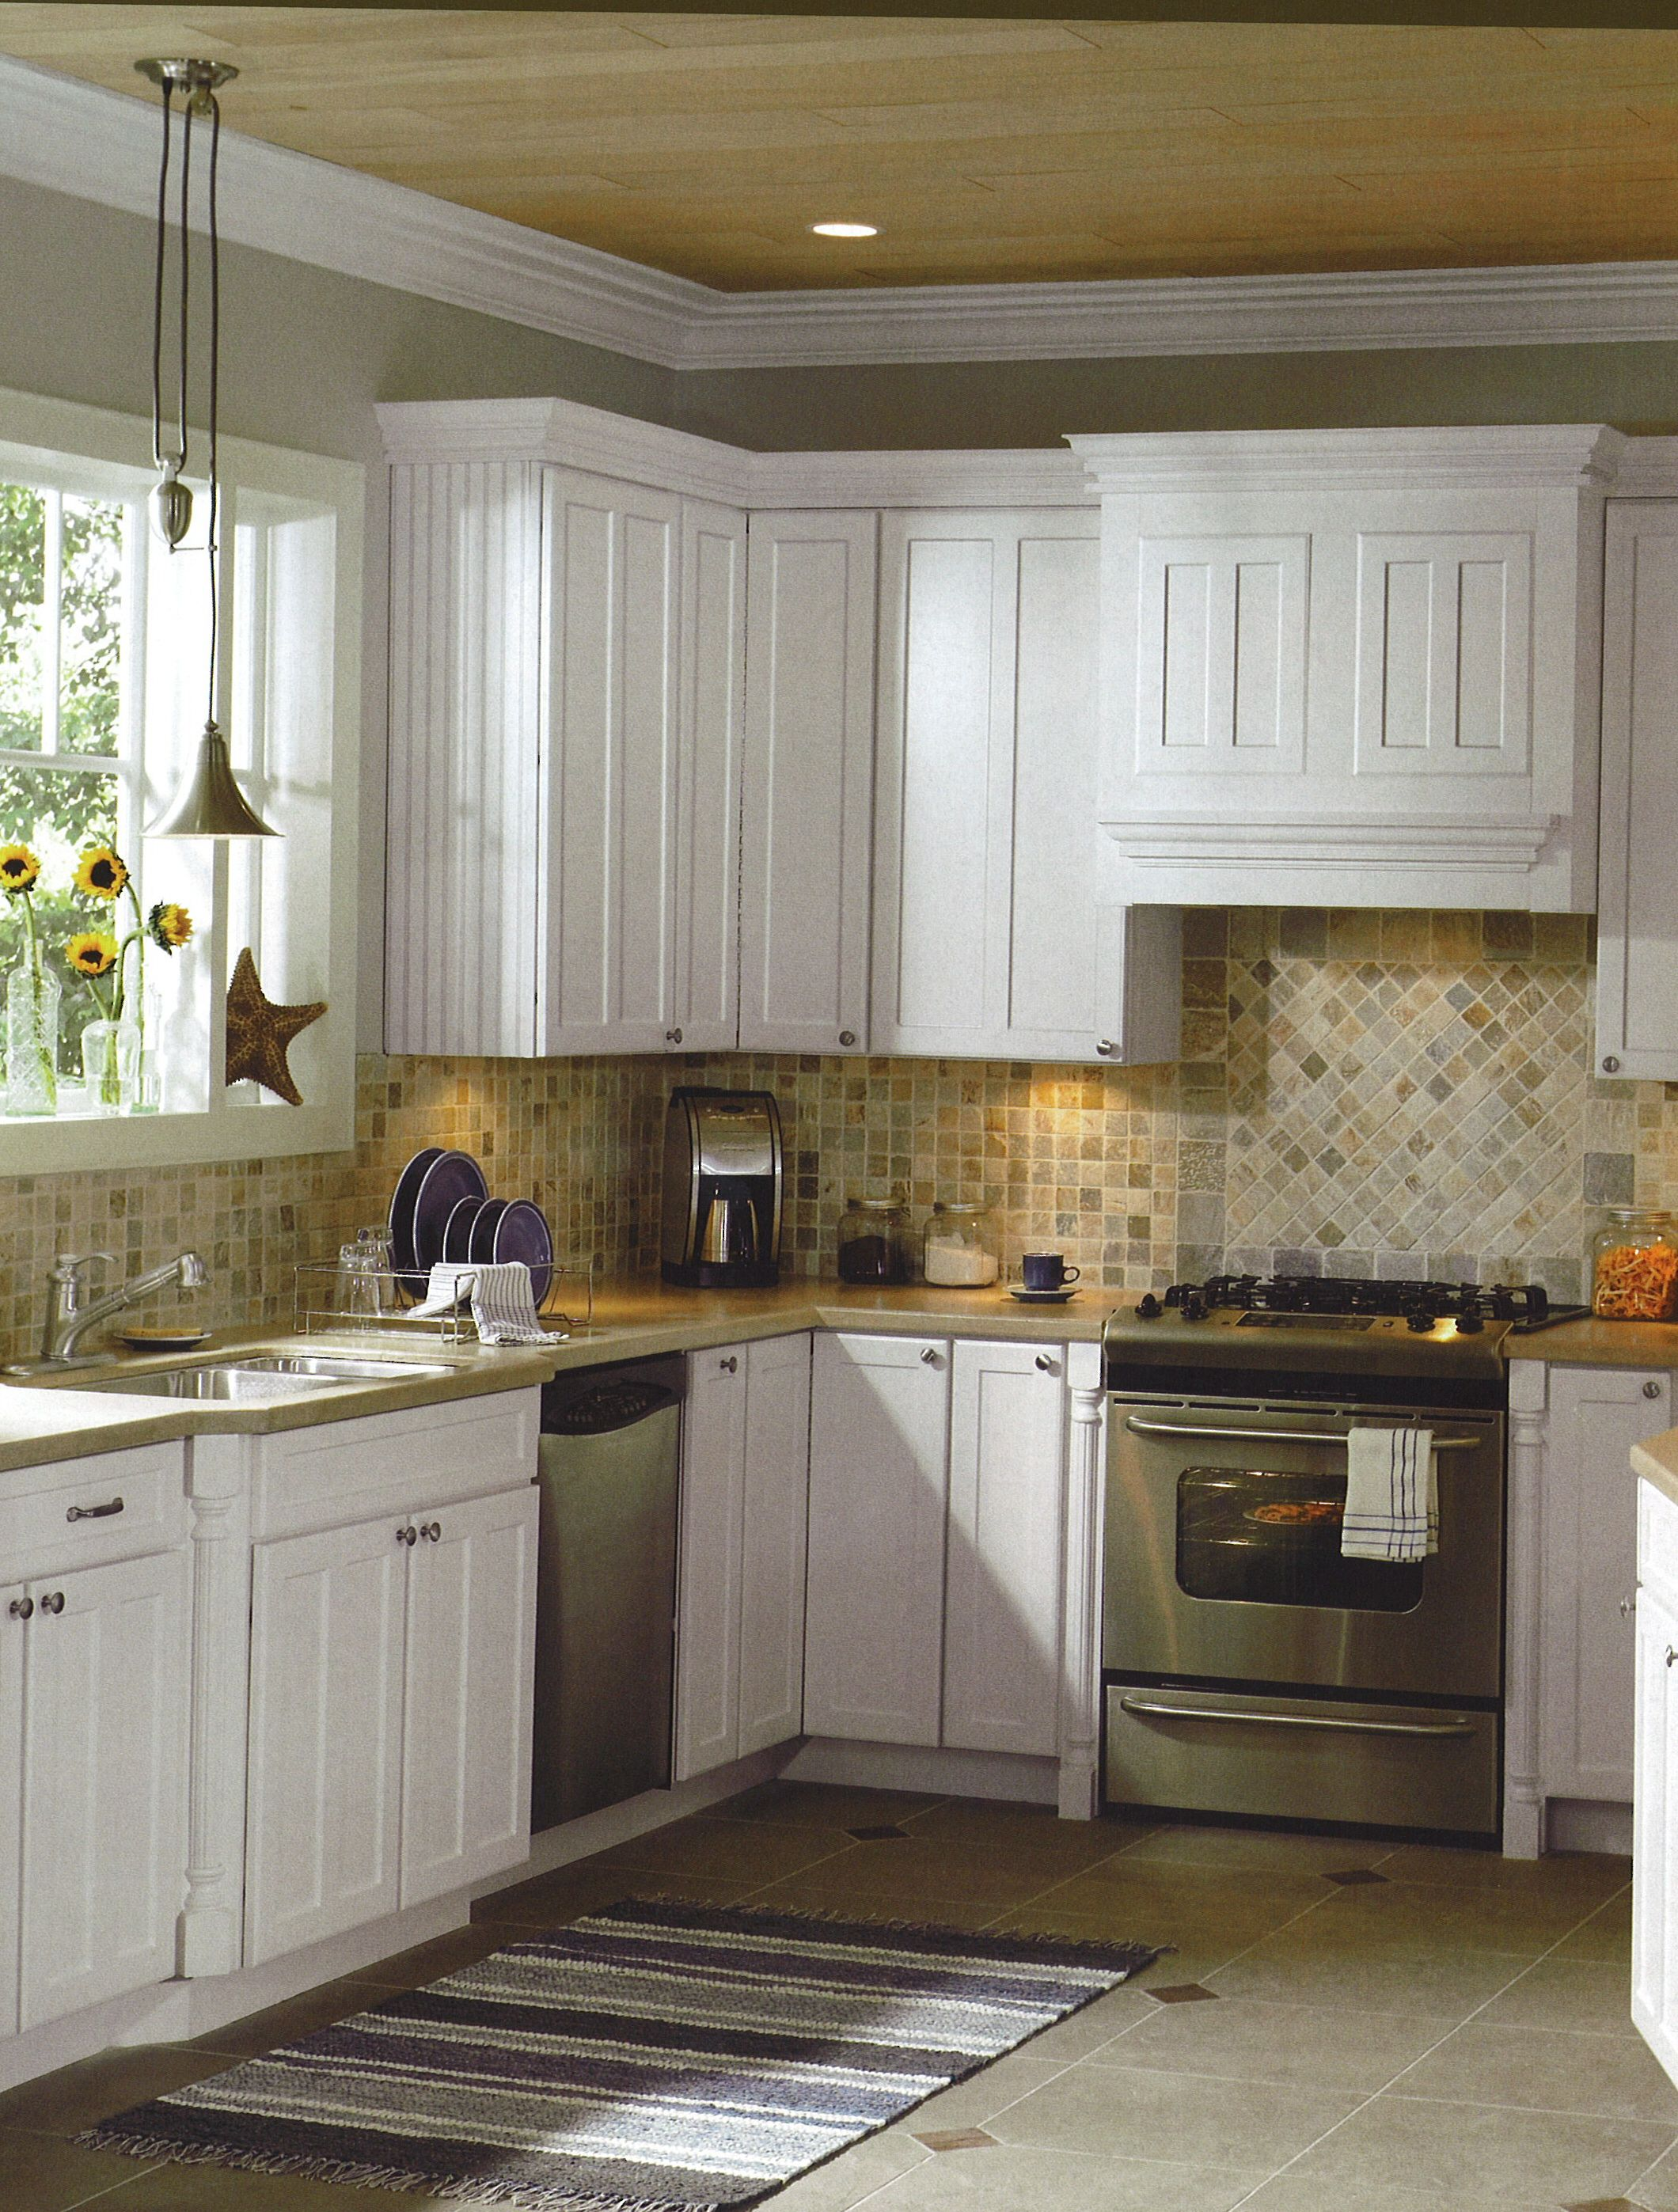 Decorating Kitchen Shelves Best Floor And Counter Color For White Kitchen Cabinets Country